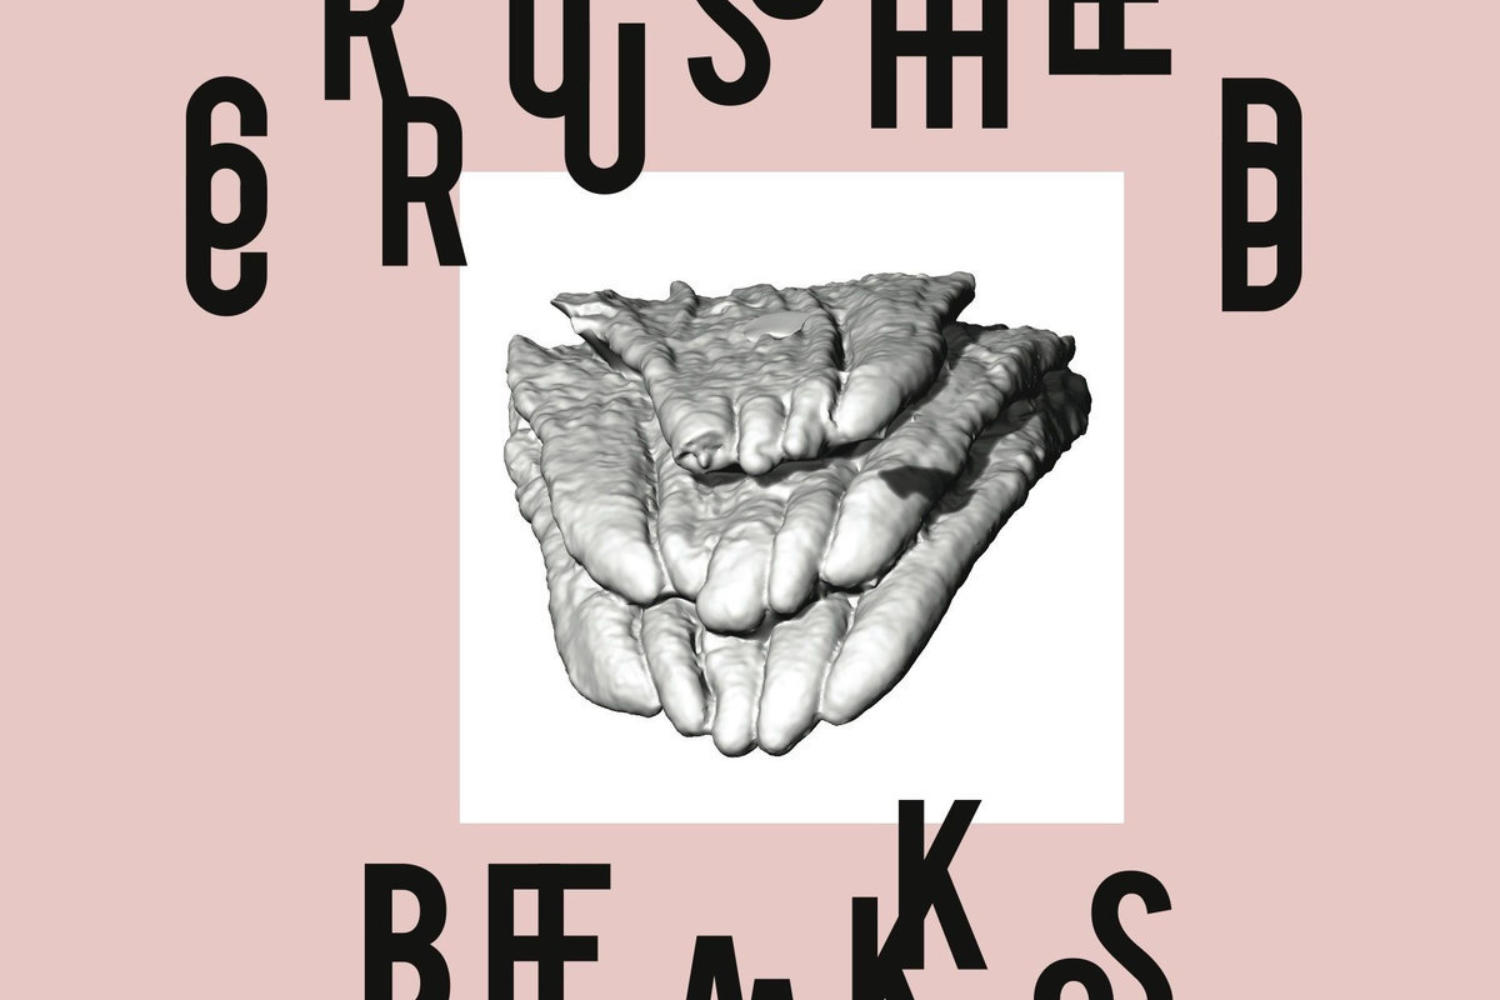 Crushed Beaks - Scatter